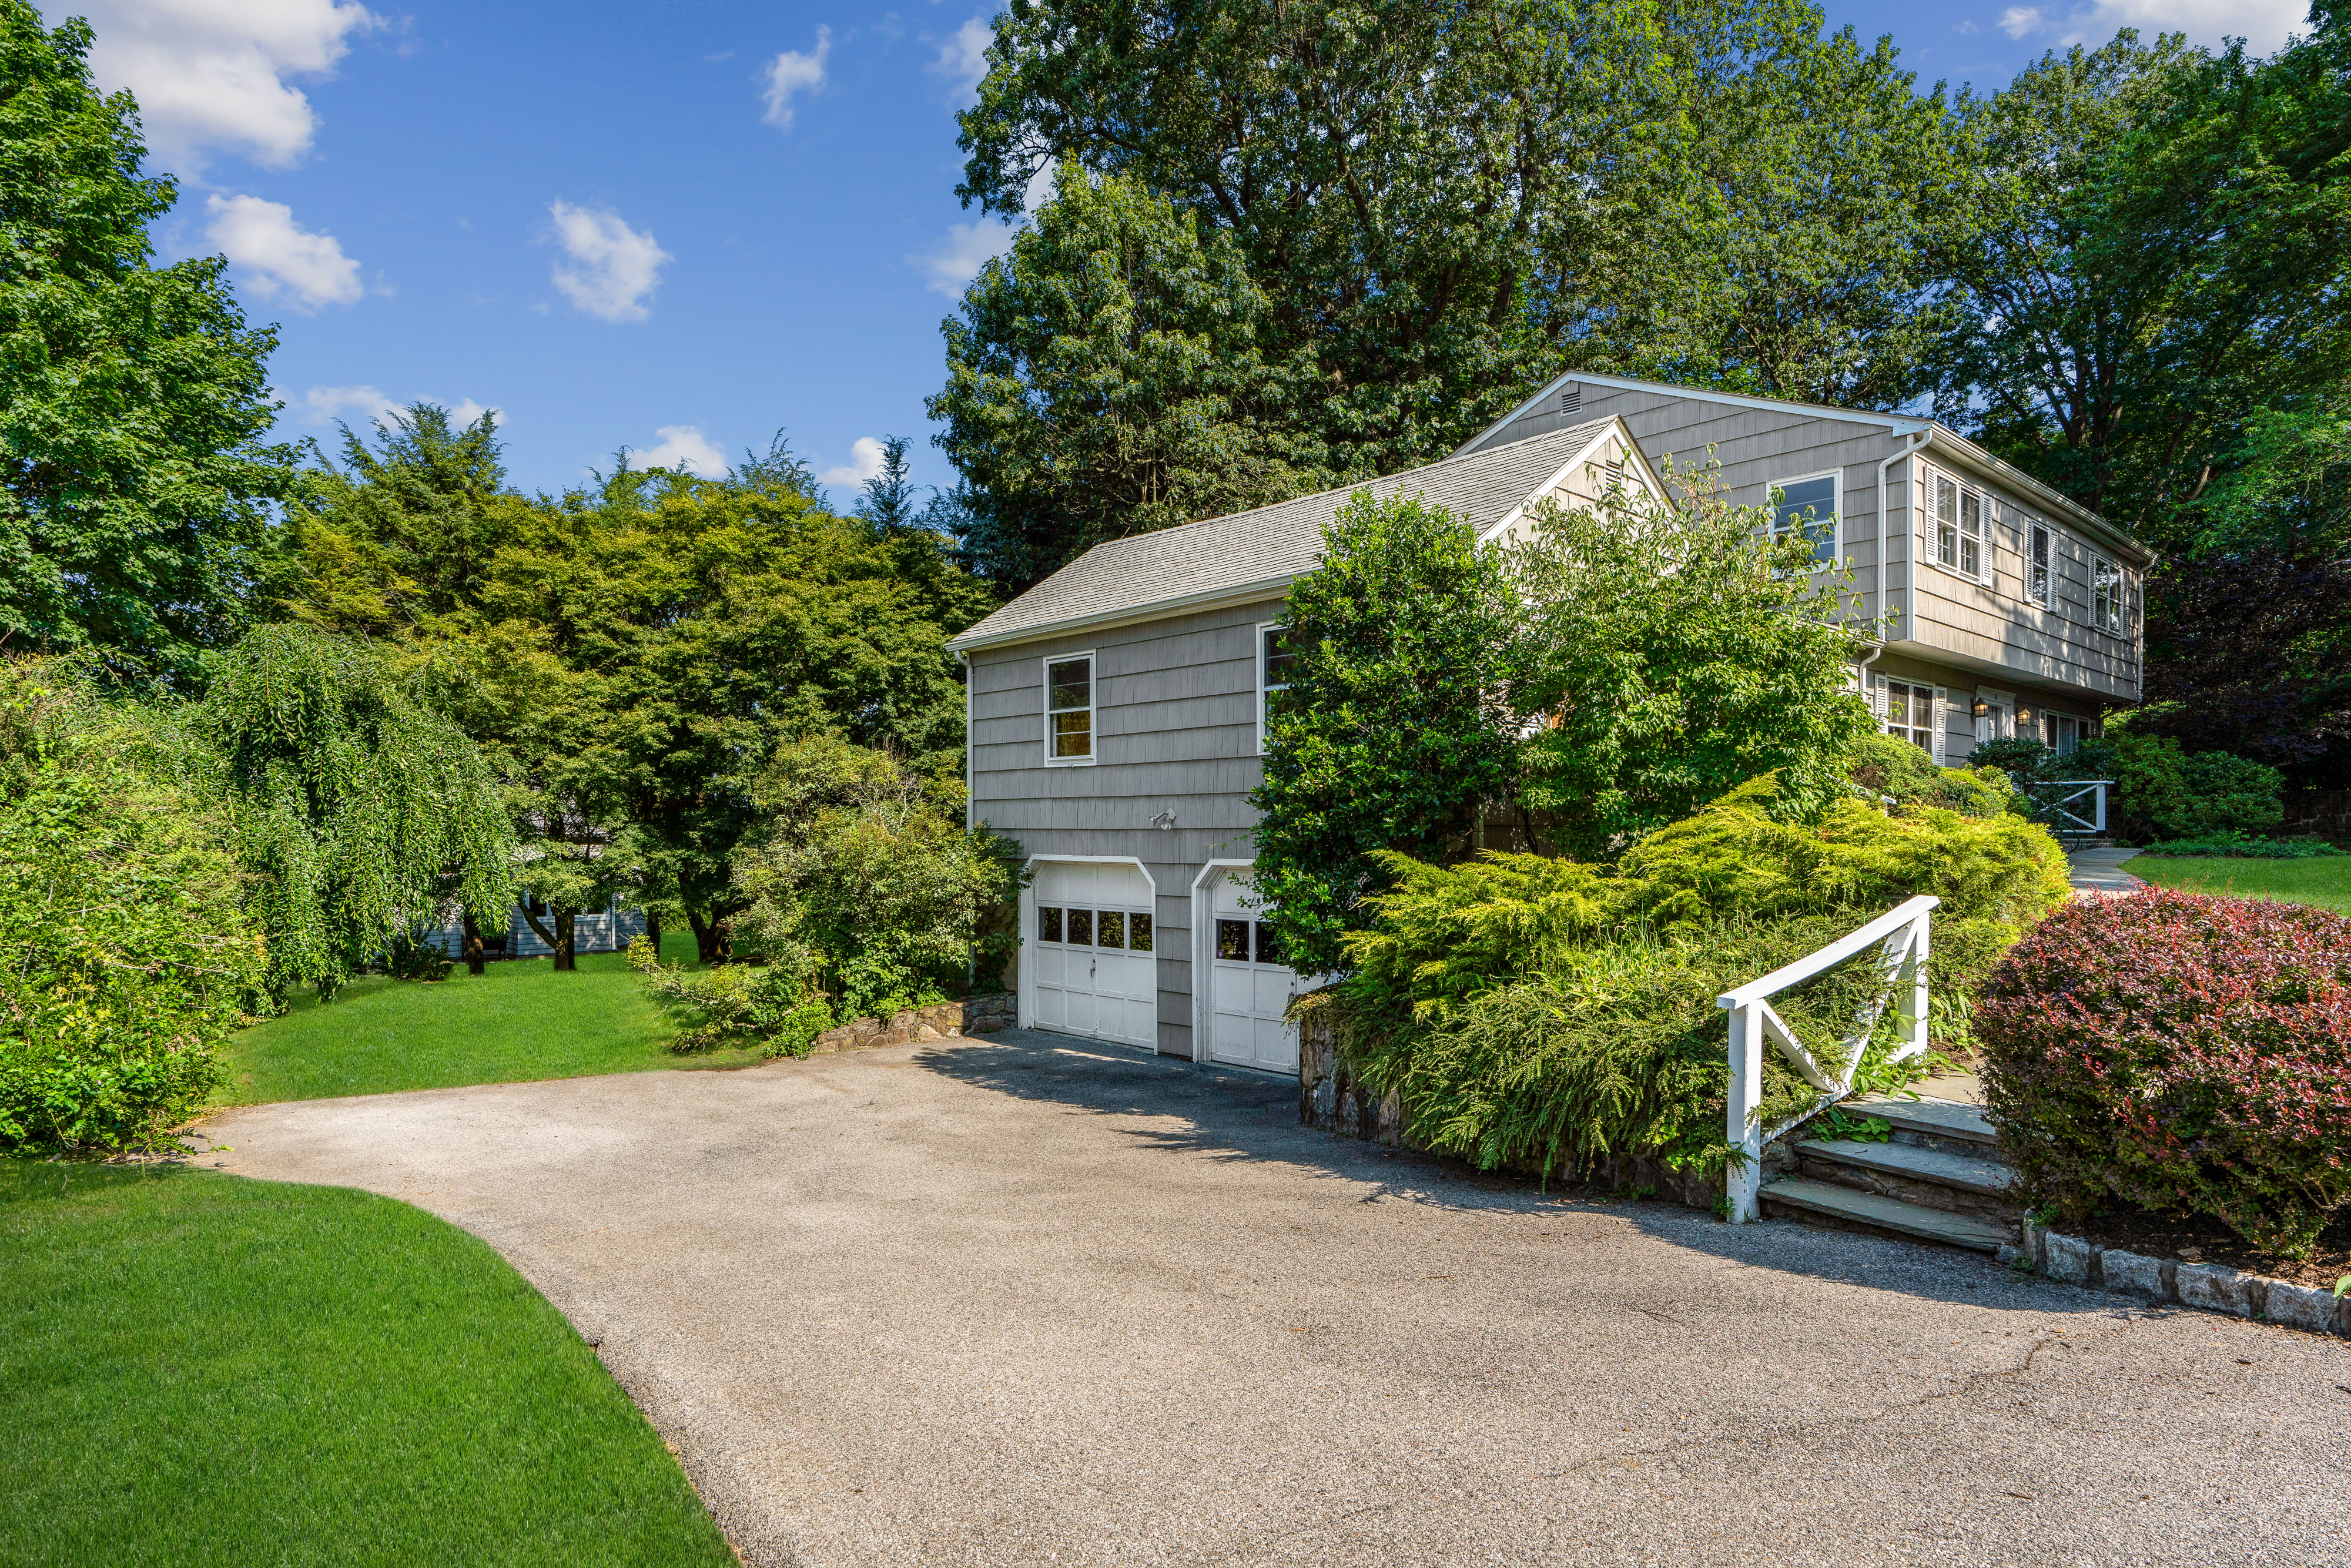 Single Family Home for sale in 10 River Terrace, Tarrytown, NY ,10591